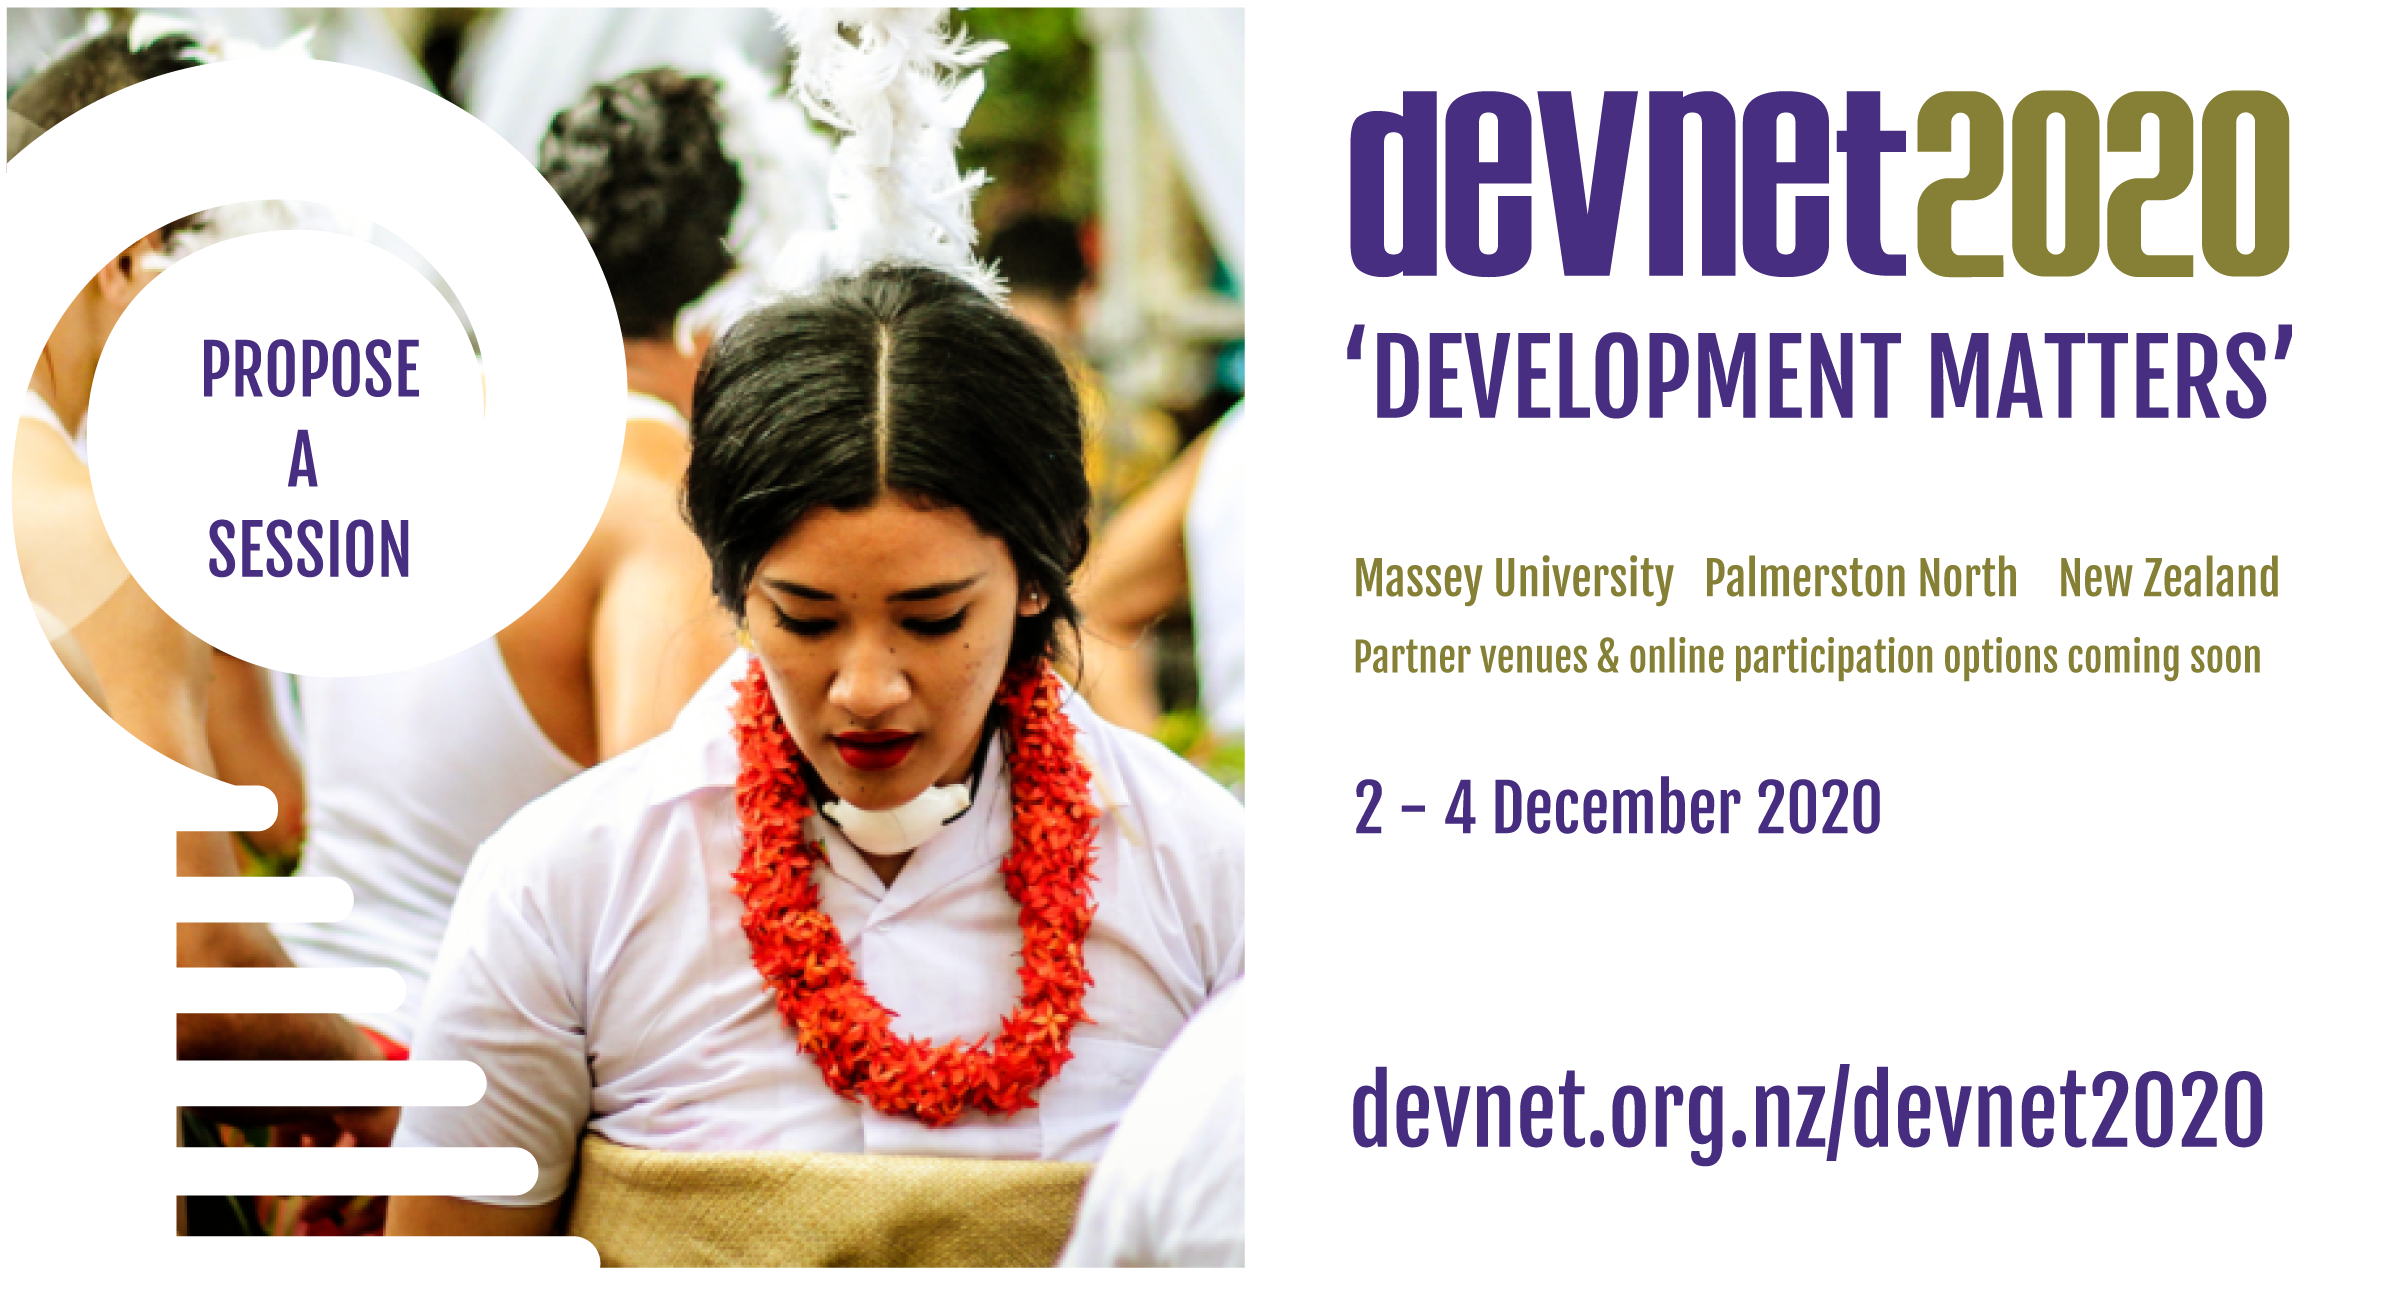 Submit a proposal for a session at DevNet2020 by 1 June 2020.